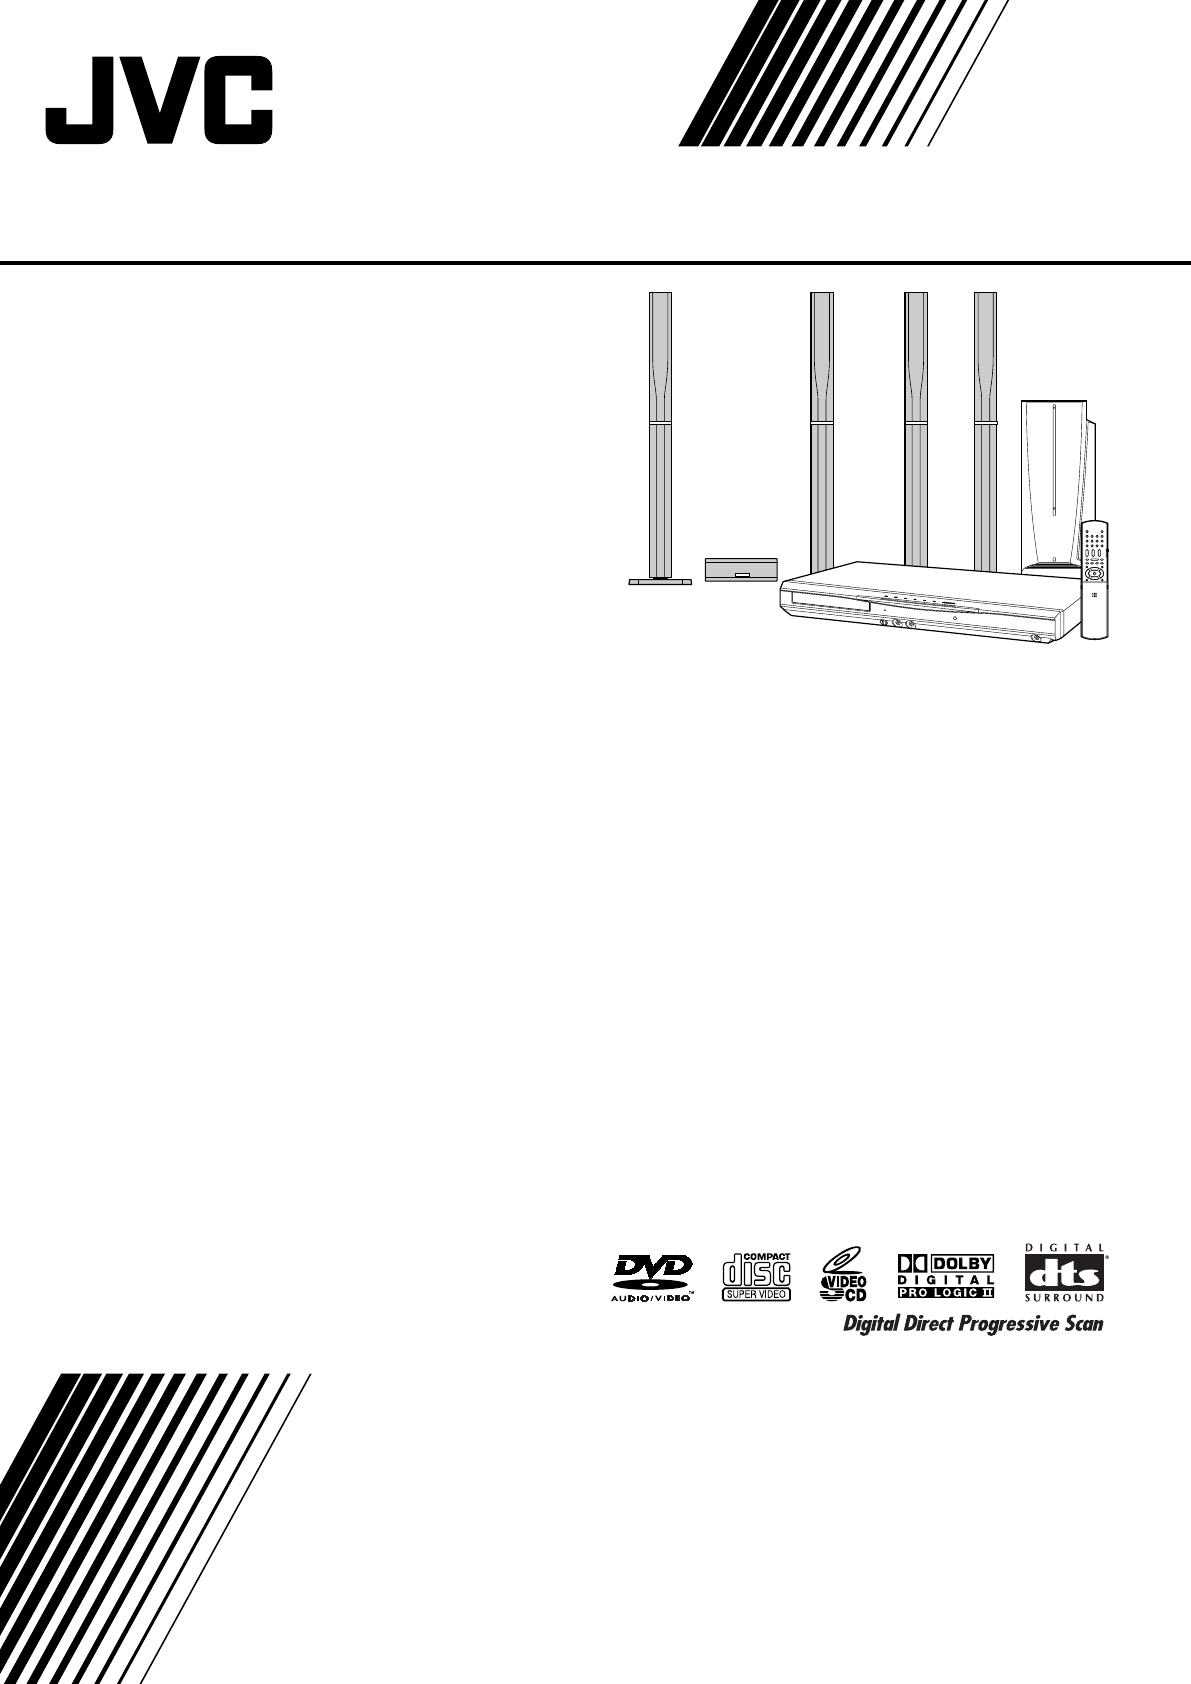 JVC Home Theater System XV-THS77 User Guide